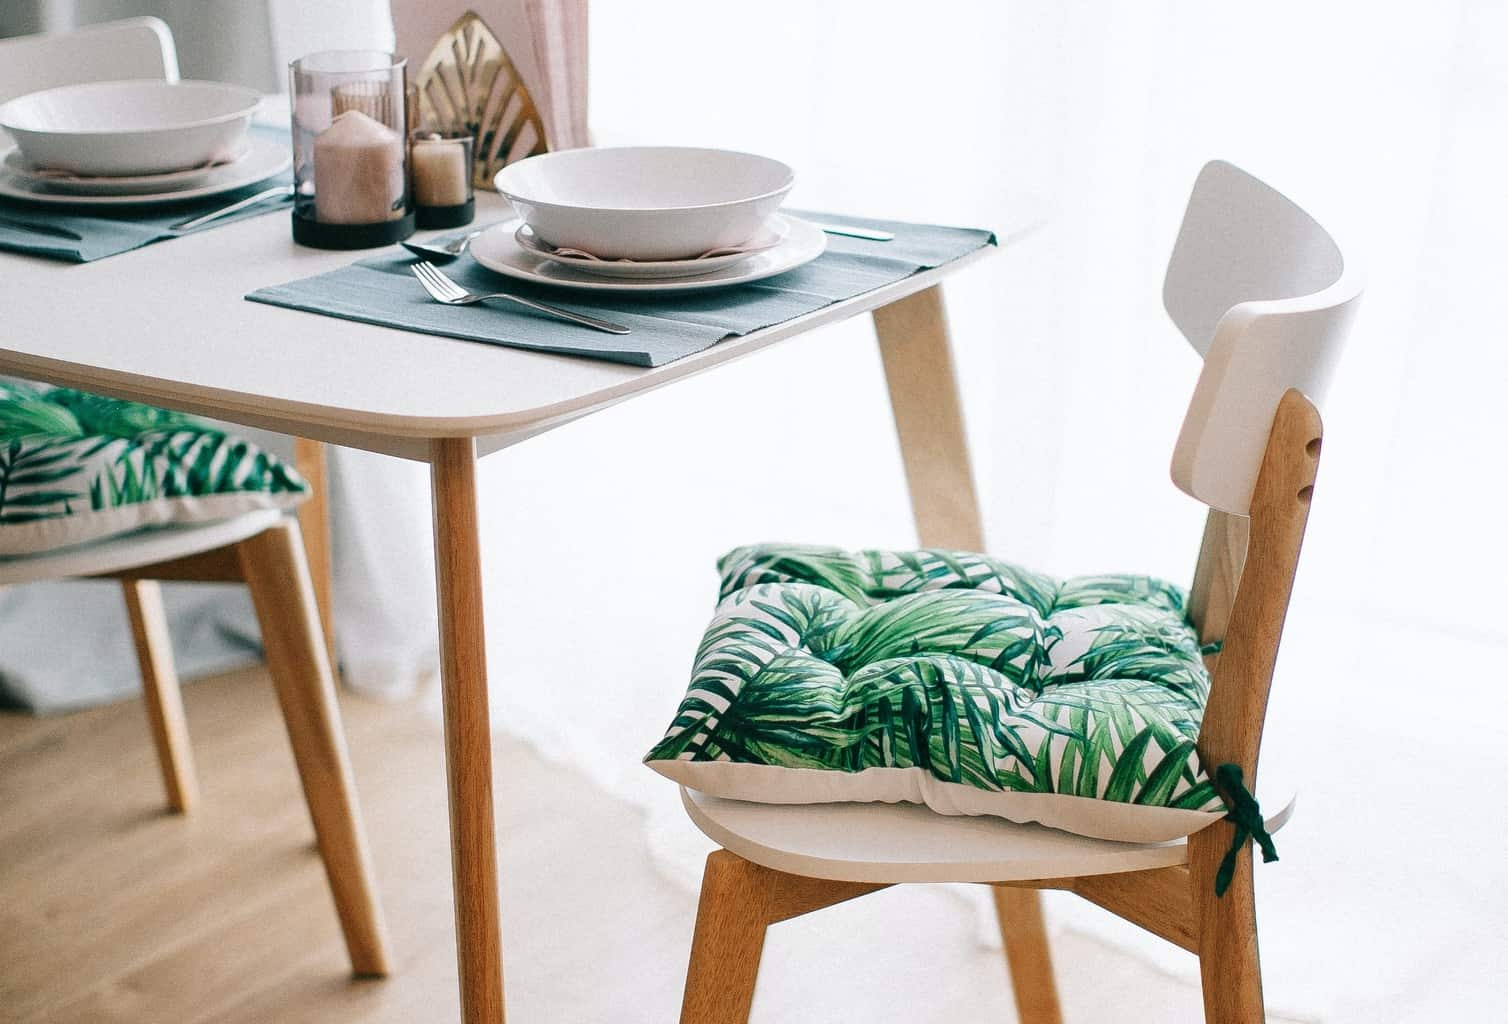 A wooden dining table with a dining chair and a separate cushion